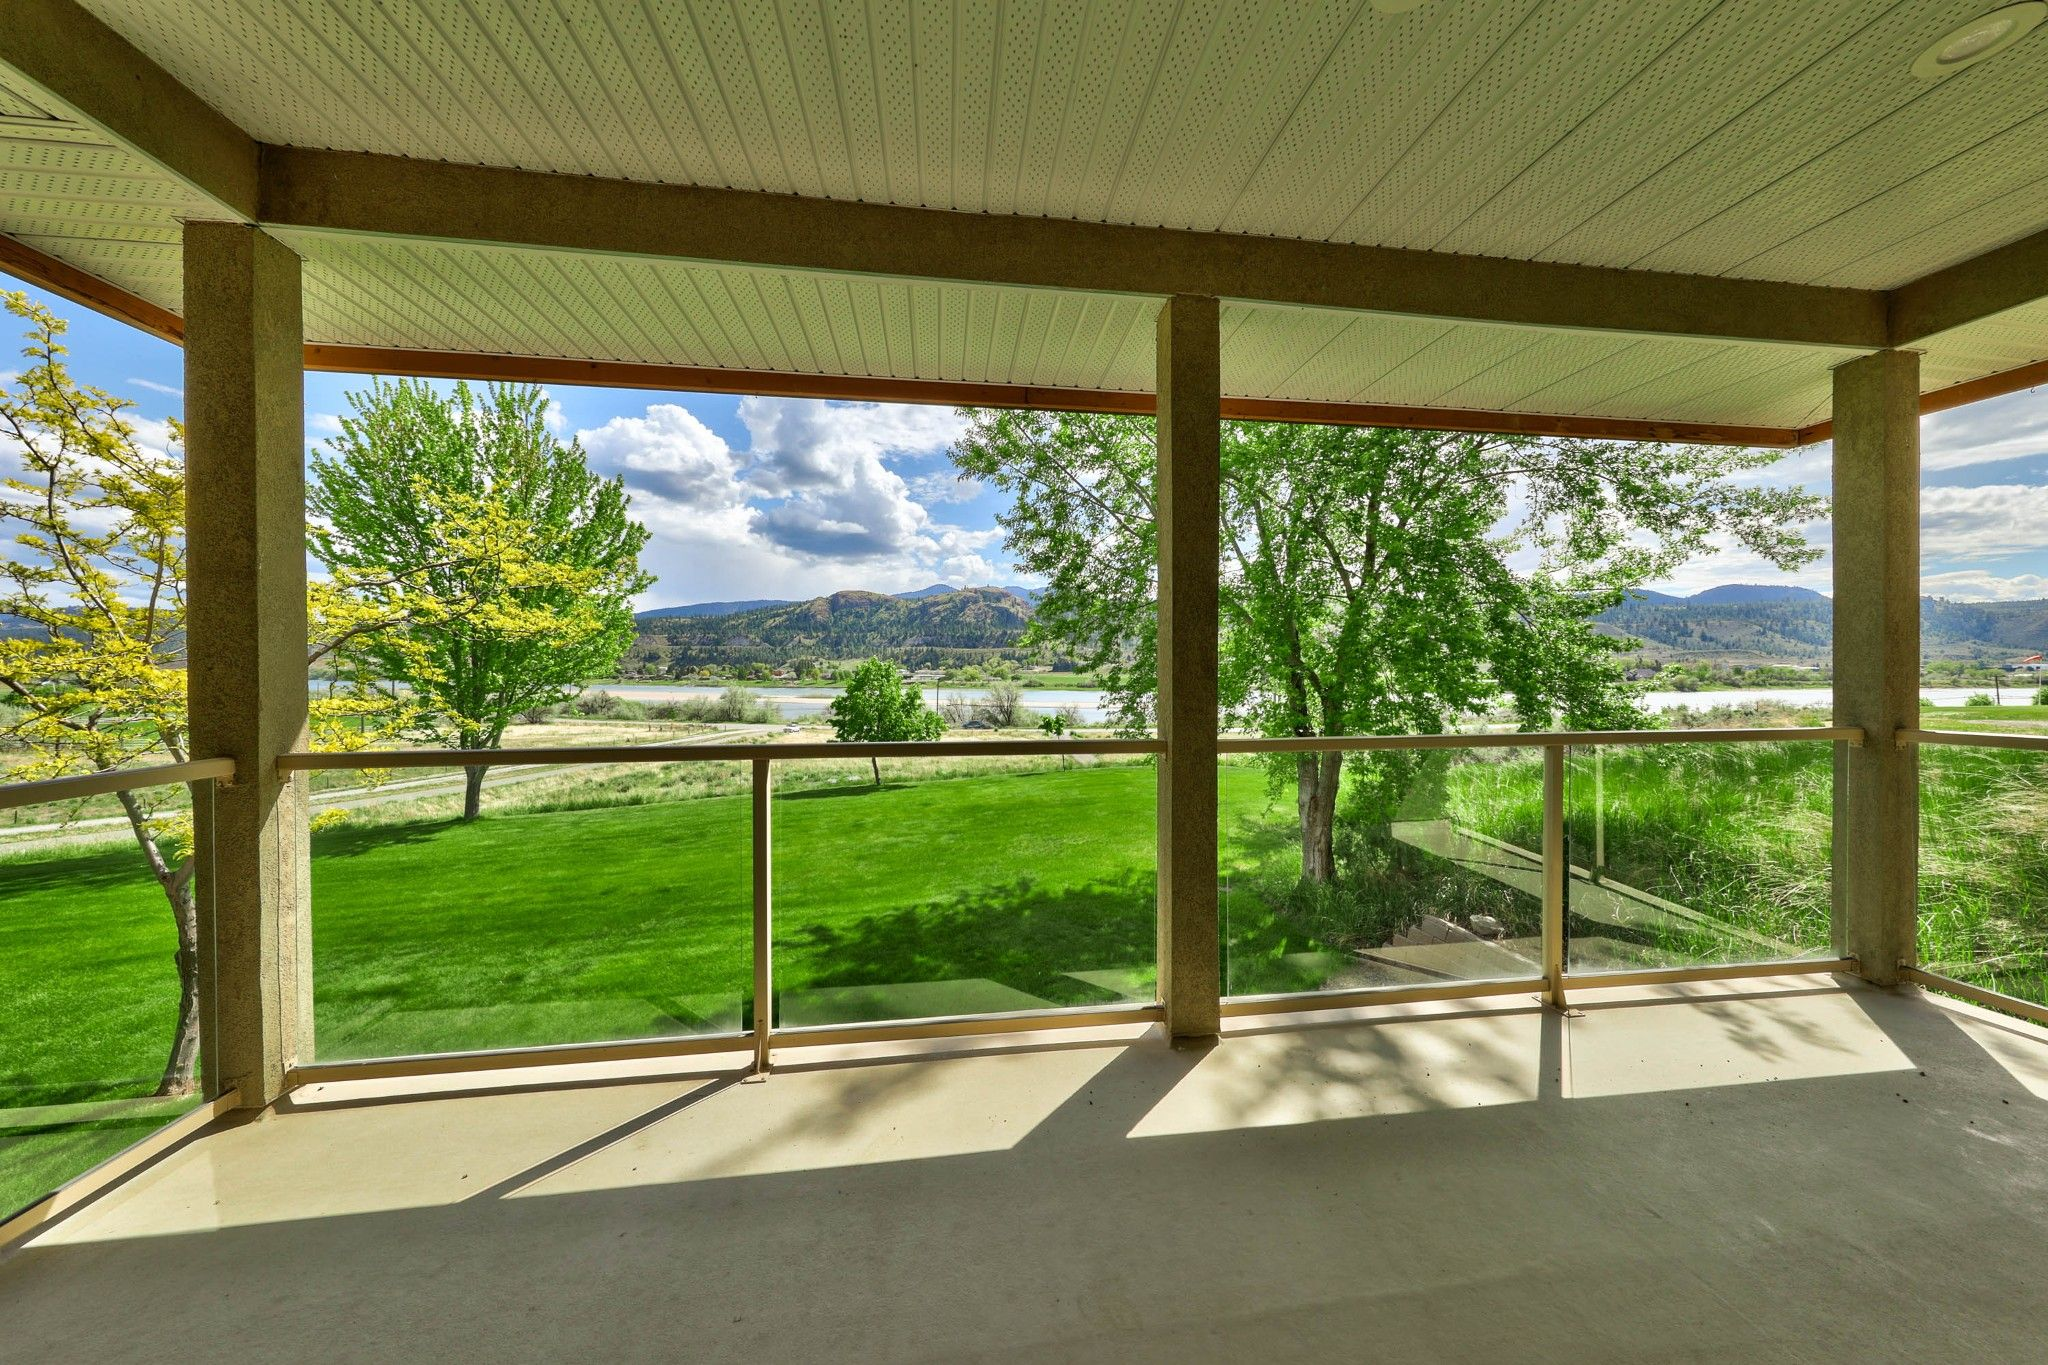 Photo 19: Photos: 3299 E Shuswap Road in Kamloops: South Thompson Valley House for sale : MLS®# 162162